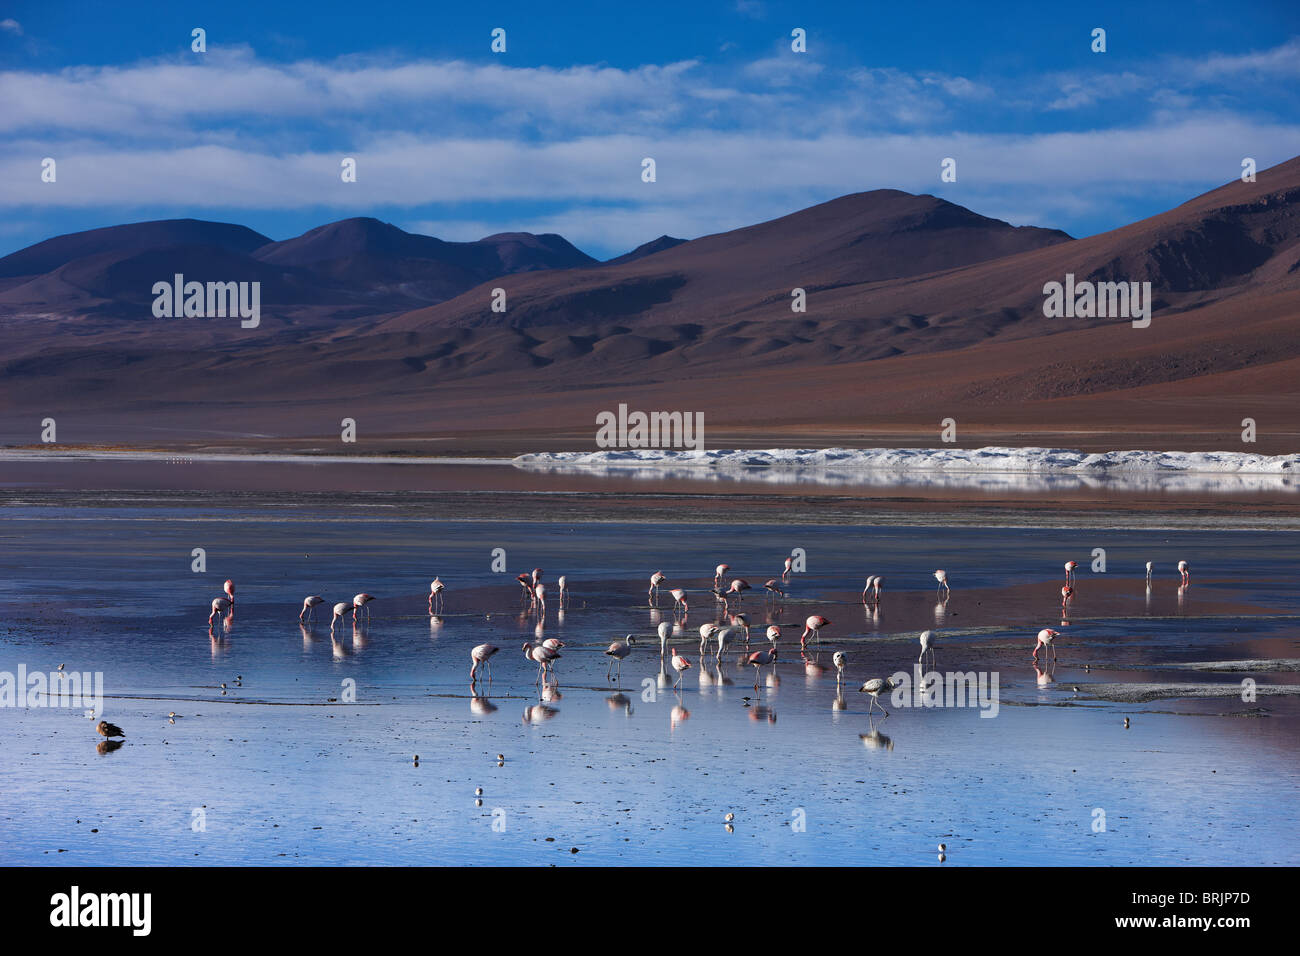 flamingos on Laguna Colorada, Eduardo Avaroa Andean Fauna National Reserve, Bolivia - Stock Image